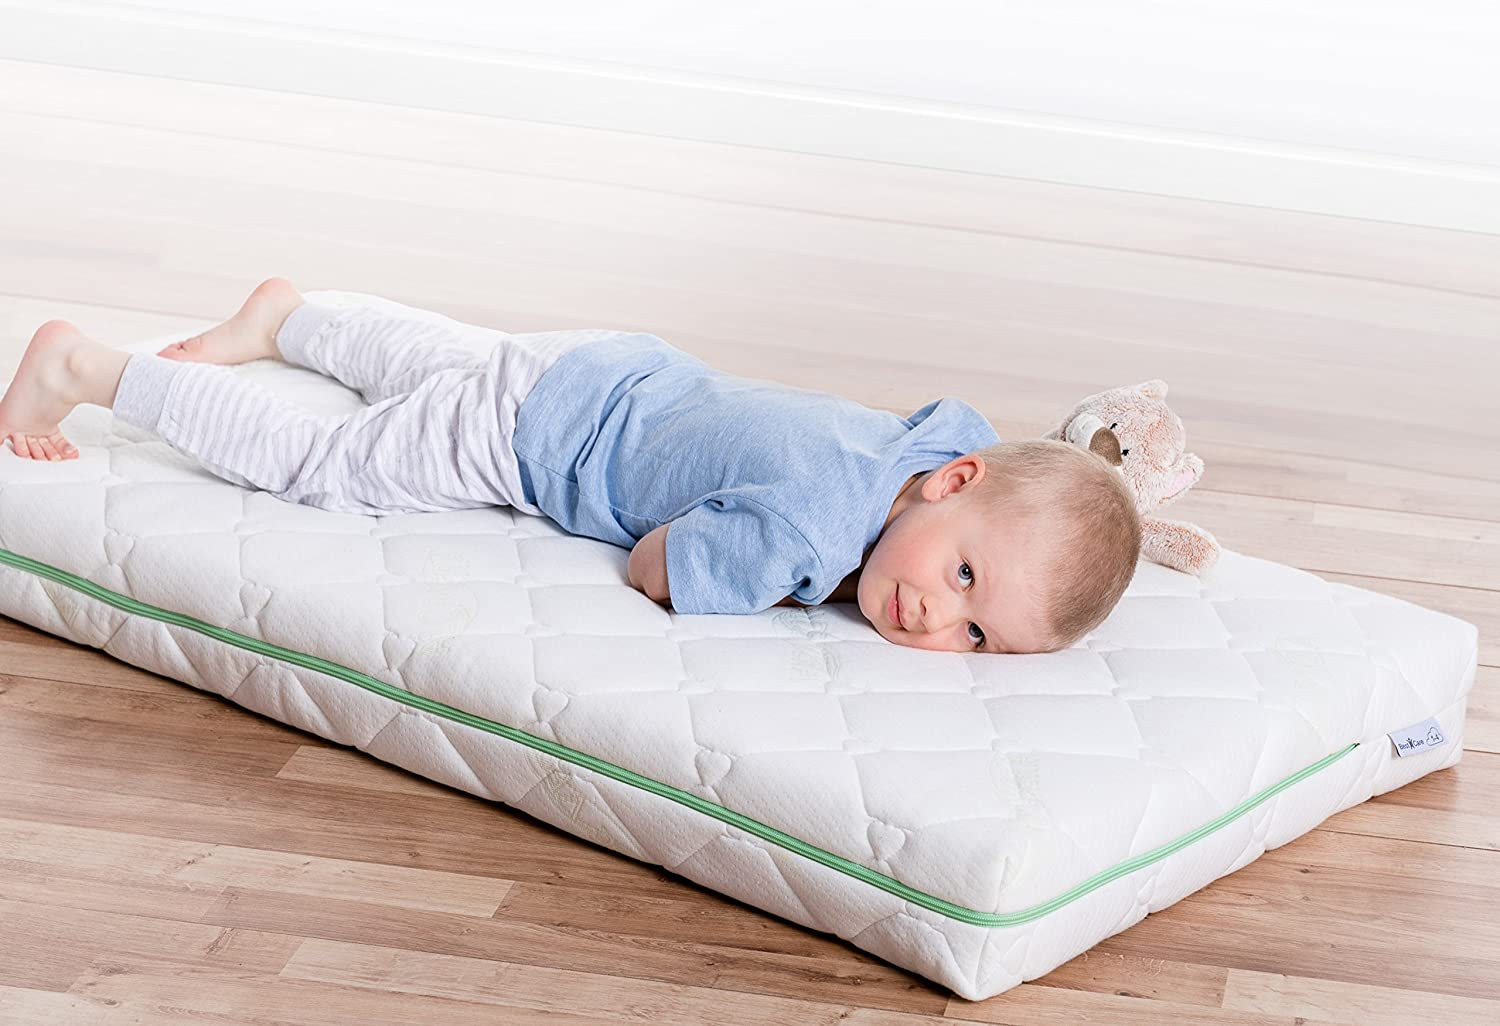 BestCare/® Height 12 cm Two Sided Made in The EU The Newest Premium Natural Mattress Size:Premium 140x70cm Organic Baby Cot Mattress No Chemical Smell No Wool or Latex Baby//Toddler Firmness